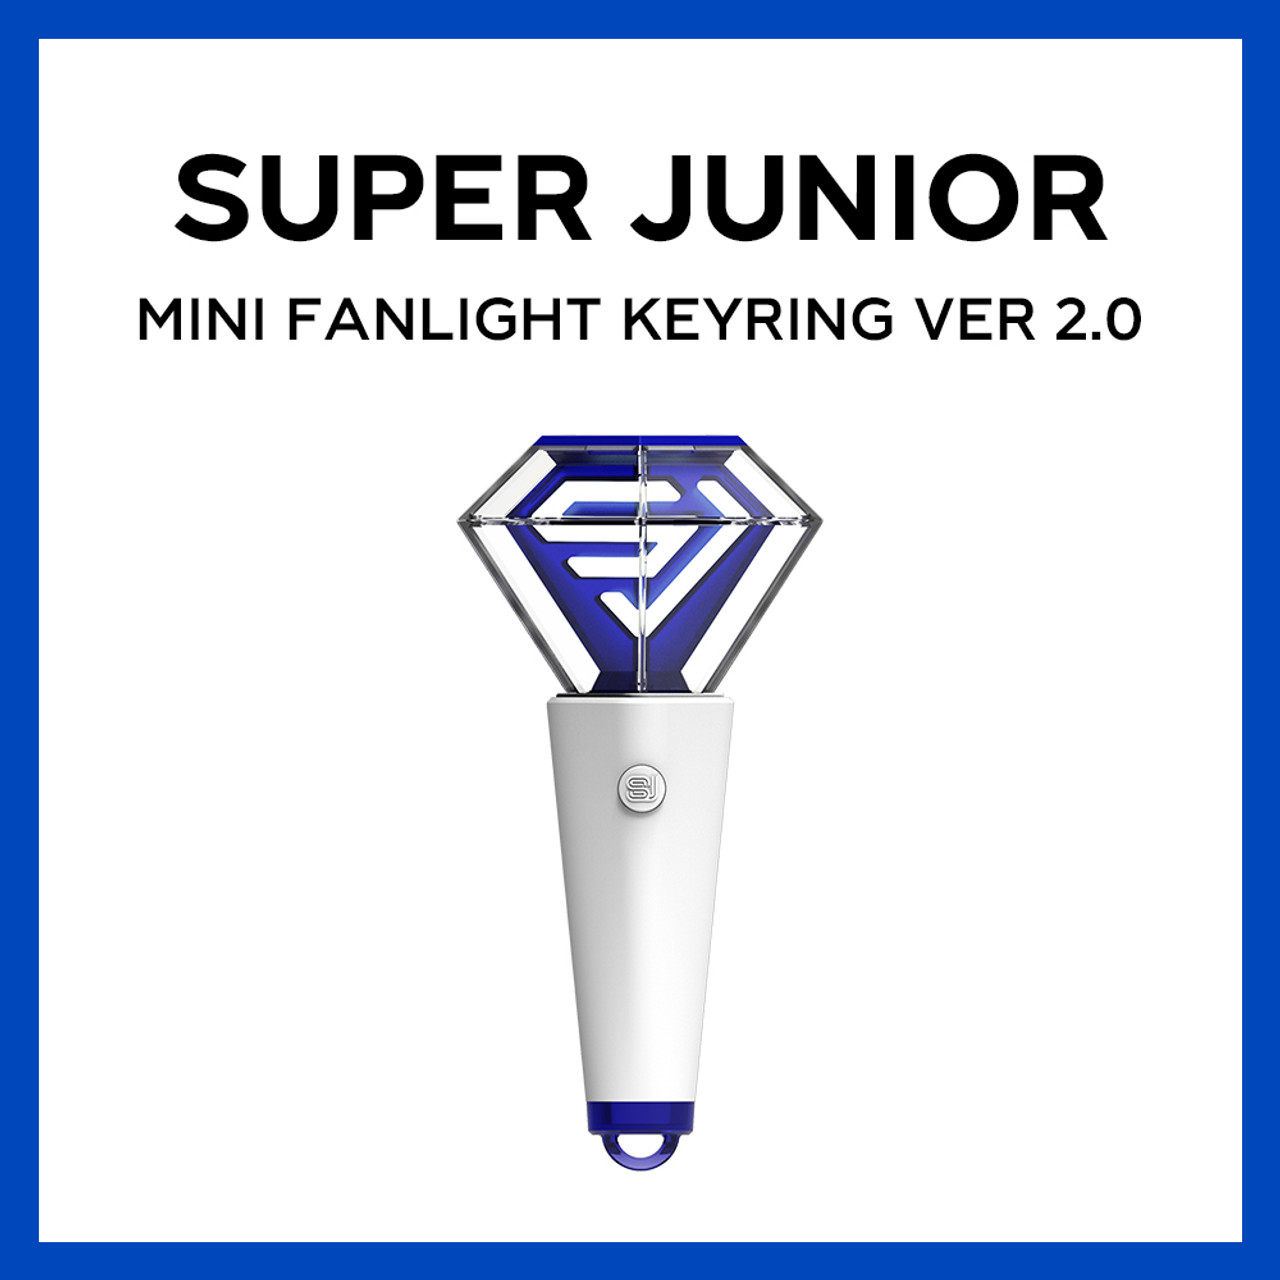 SUPER JUNIOR – MINI FANLIGHT KEYRING VER 2.0